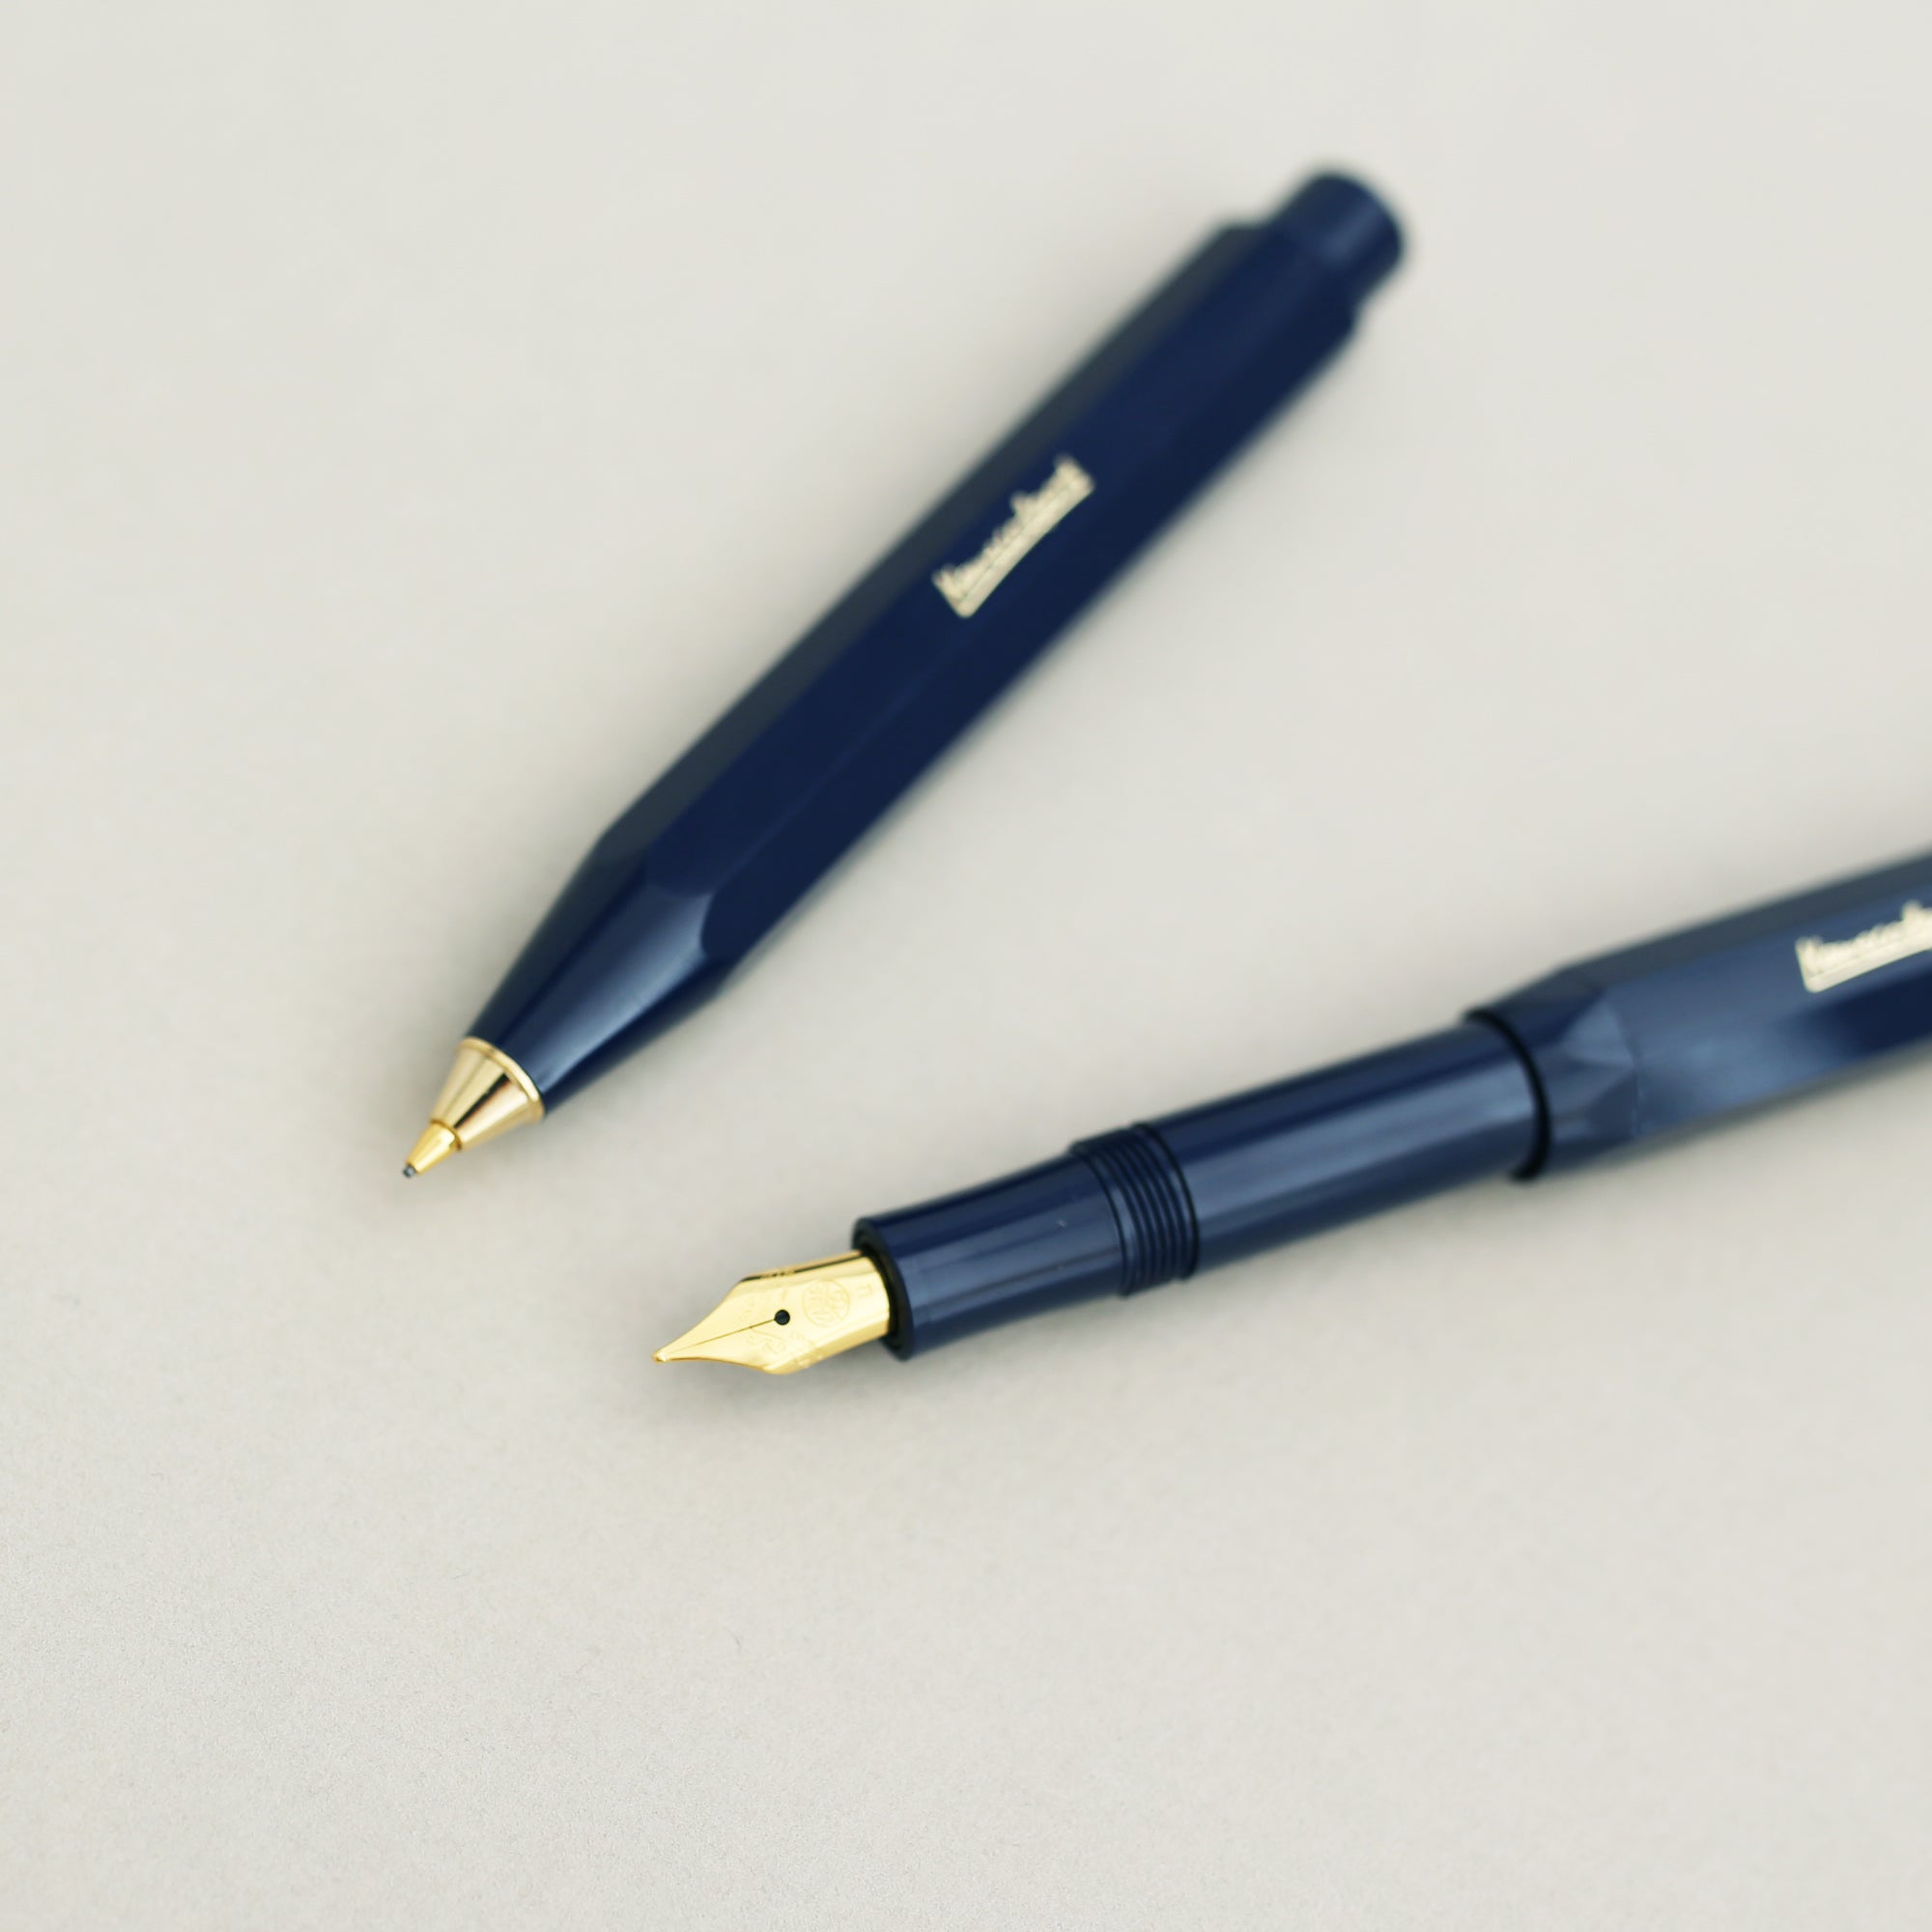 KAWECO CLASSIC SPORT MECHANICAL PENCIL 0.7 mm // NAVY